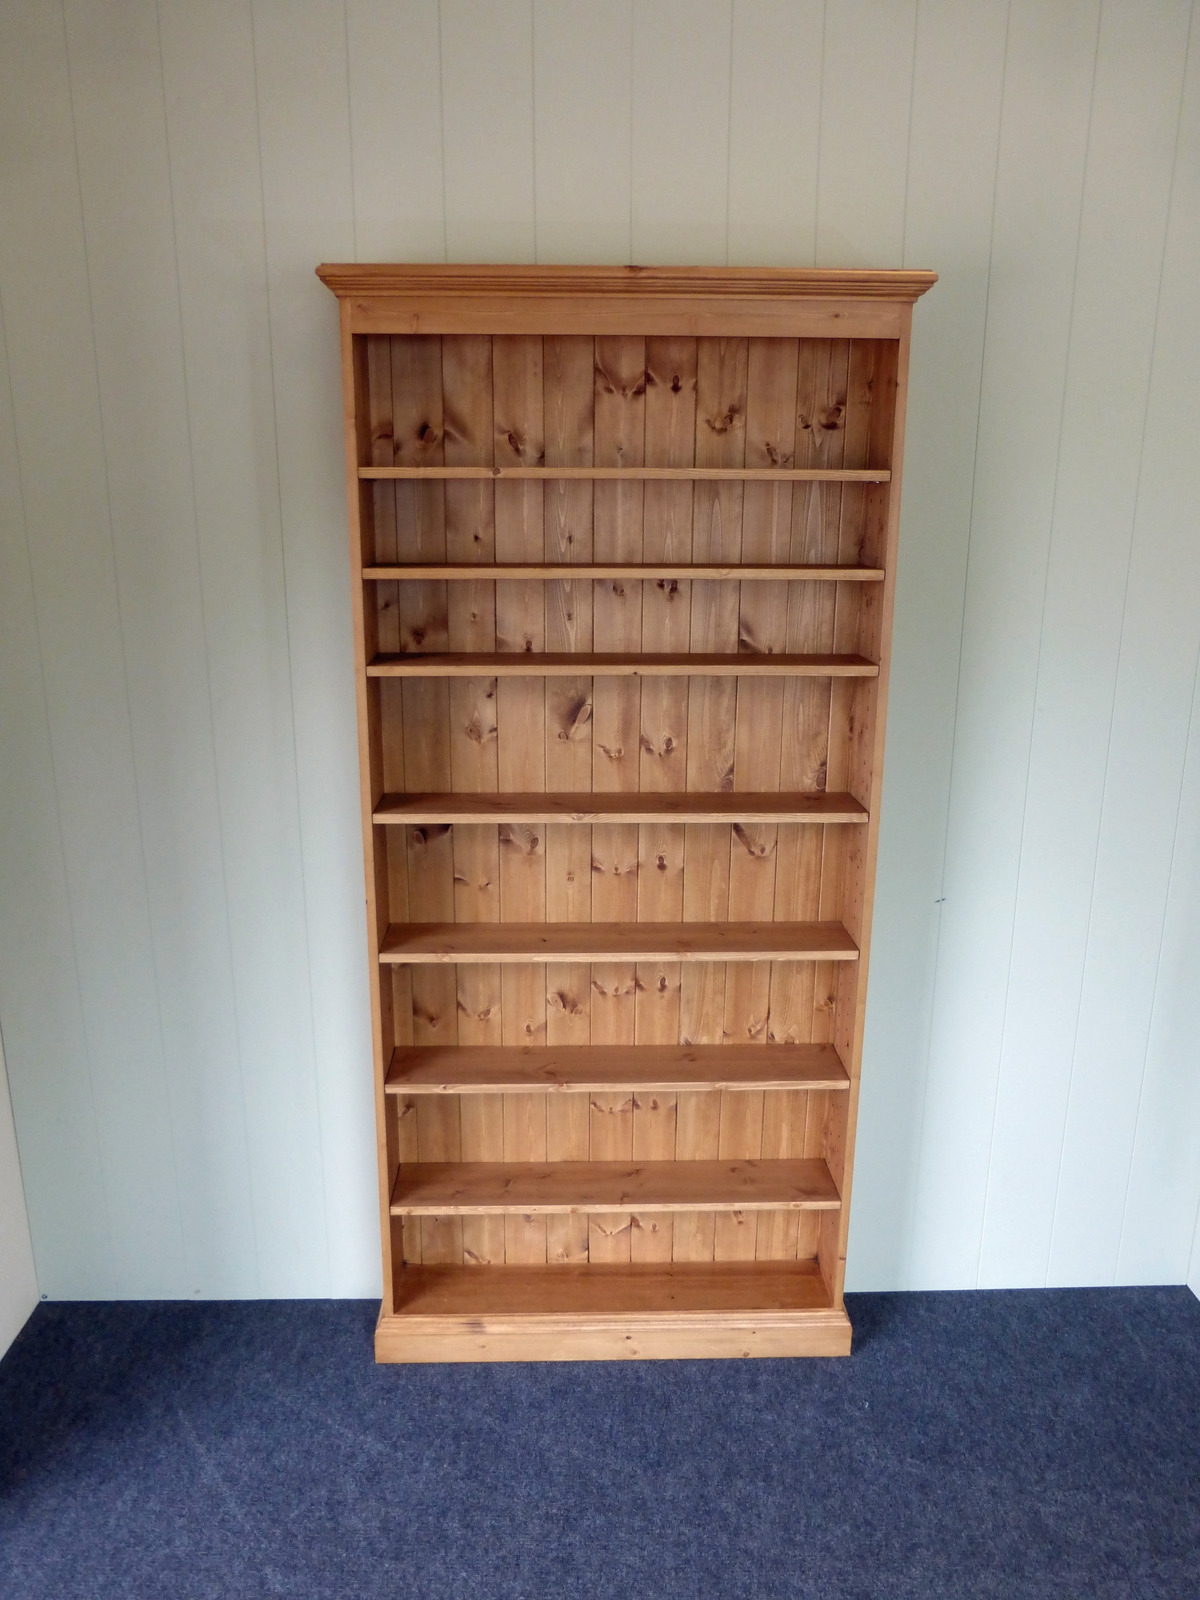 Cd Dvd Shelving Bookcases Pine Oak Painted And Bespoke Intended For Bespoke Cd Storage (#3 of 15)